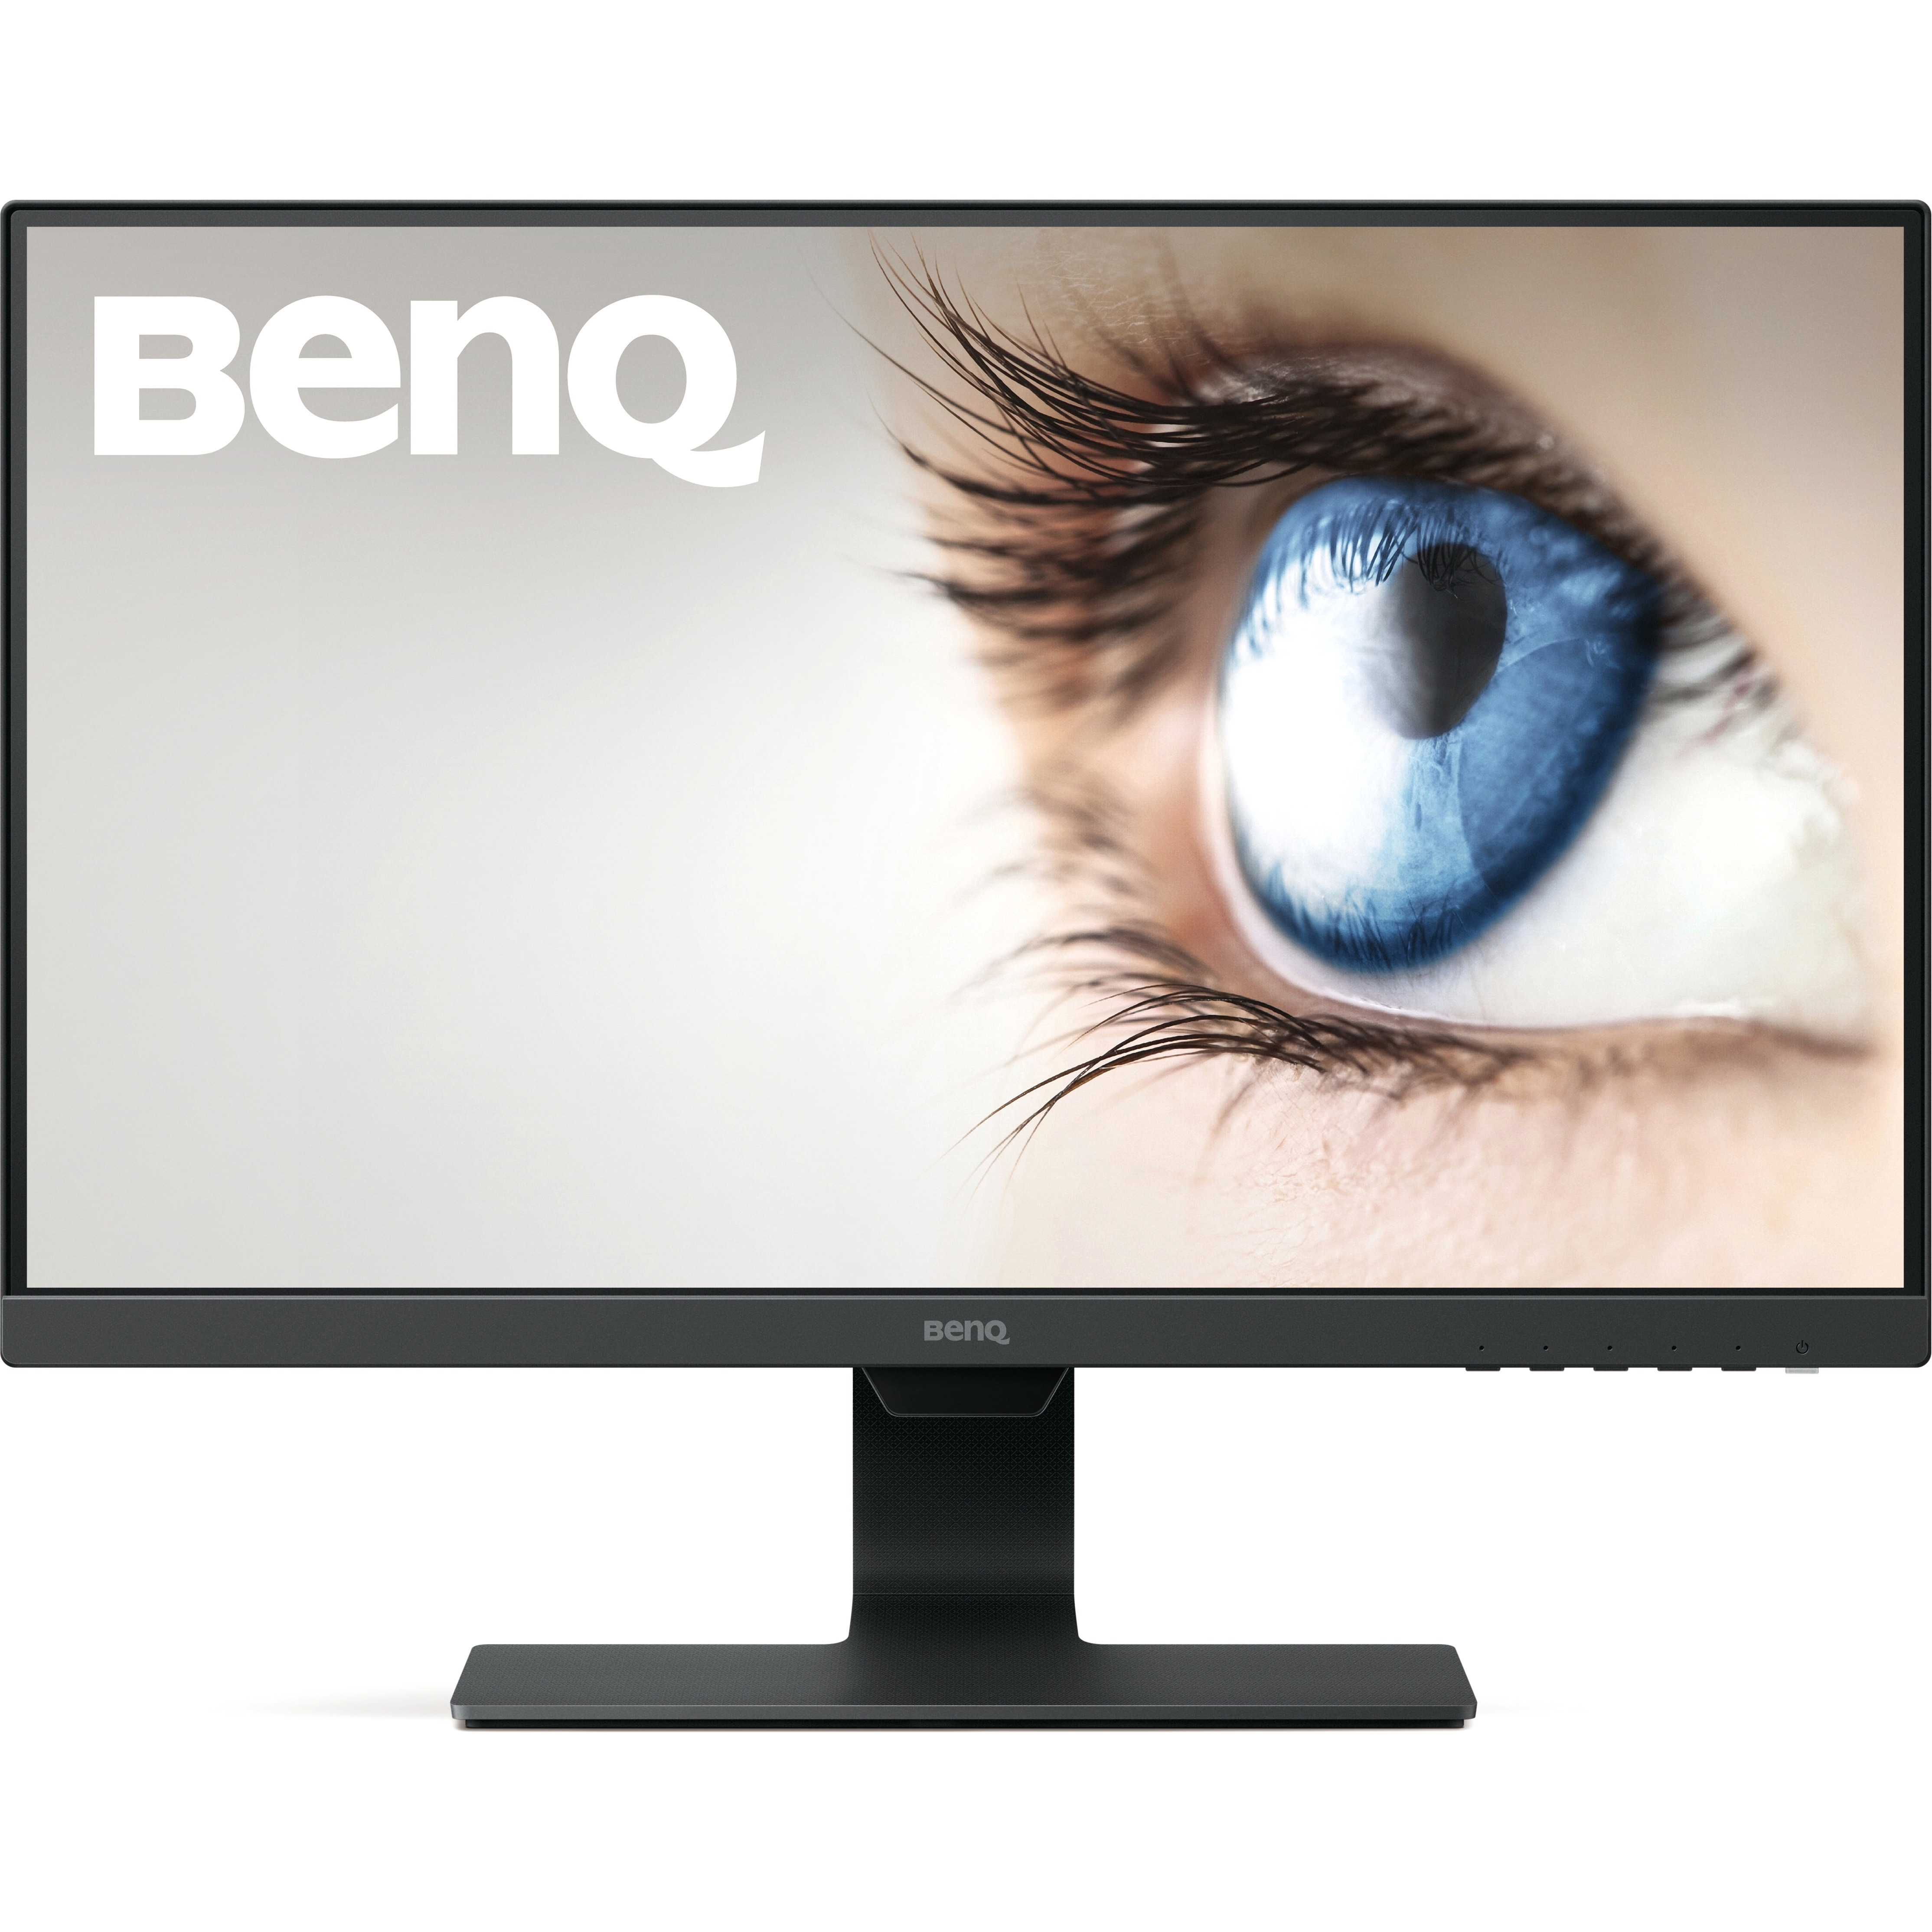 BenQ GW2780 27inch Full HD LED LCD Monitor